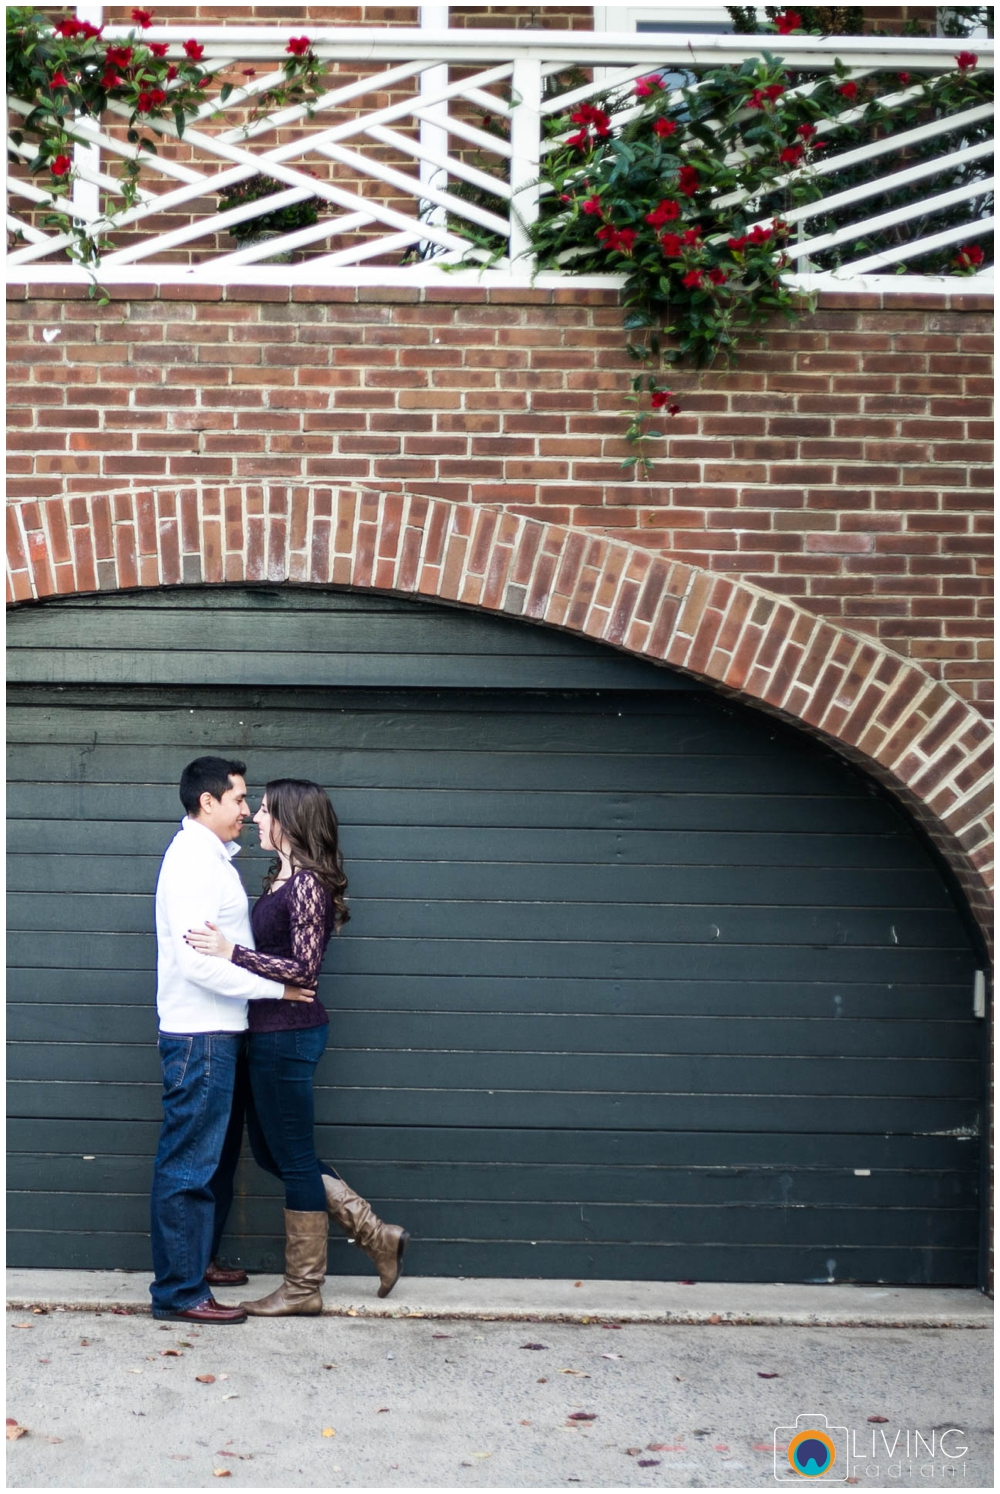 mario+allison-engaged-alexandria-virginia-engagement-weddings-outdoors-living-radiant-photography_0005.jpg